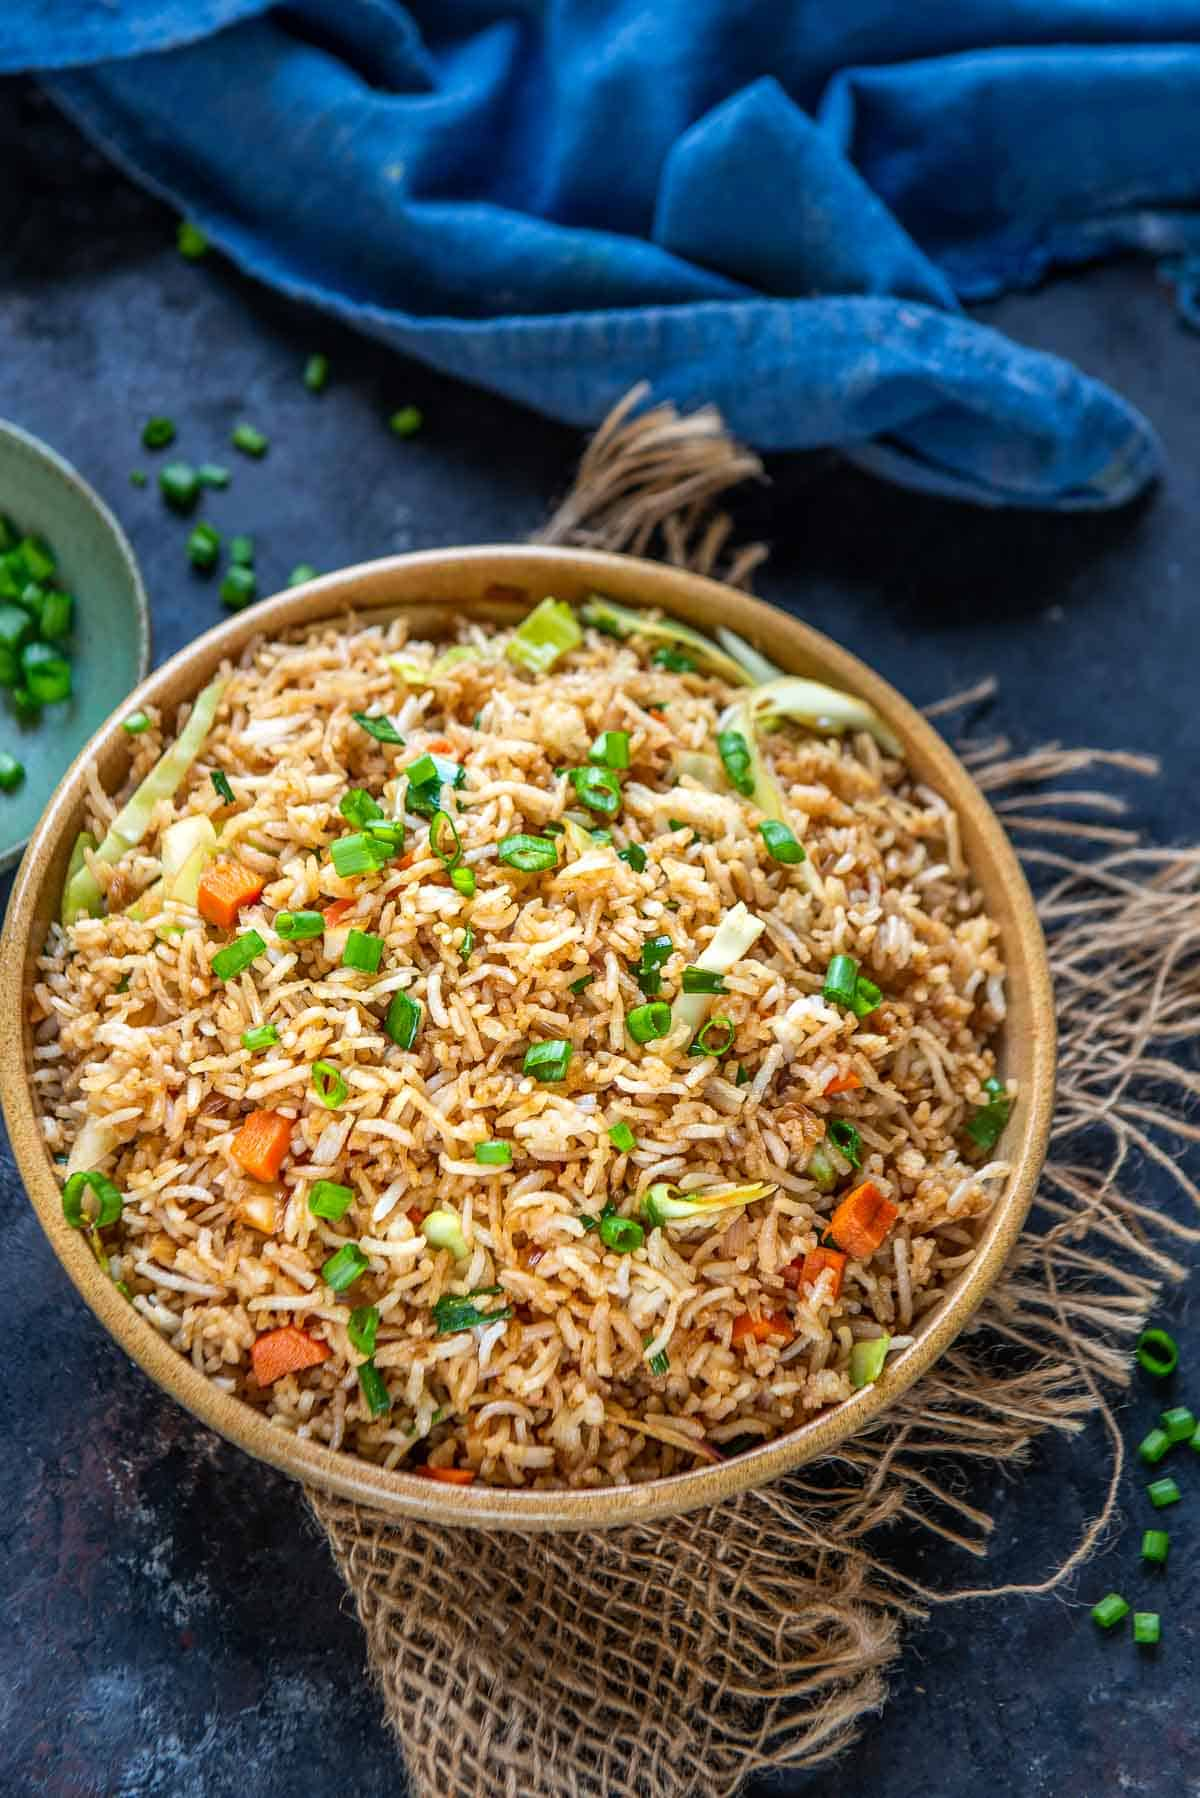 Vegetable fried rice served on a plate.